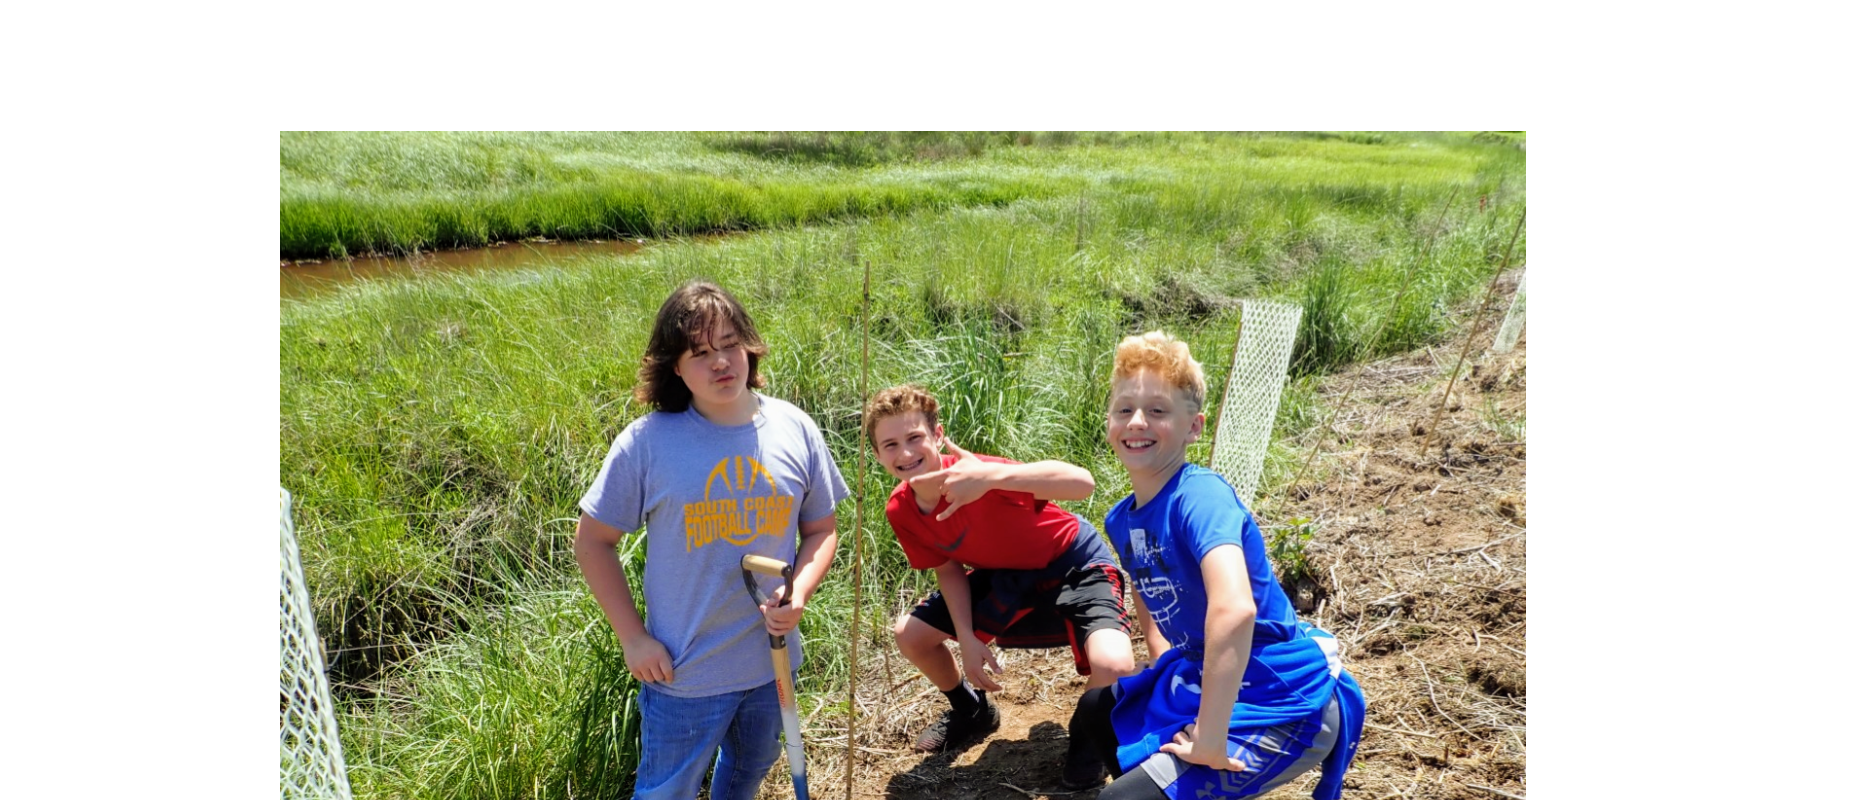 Boys at Millicoma Marsh